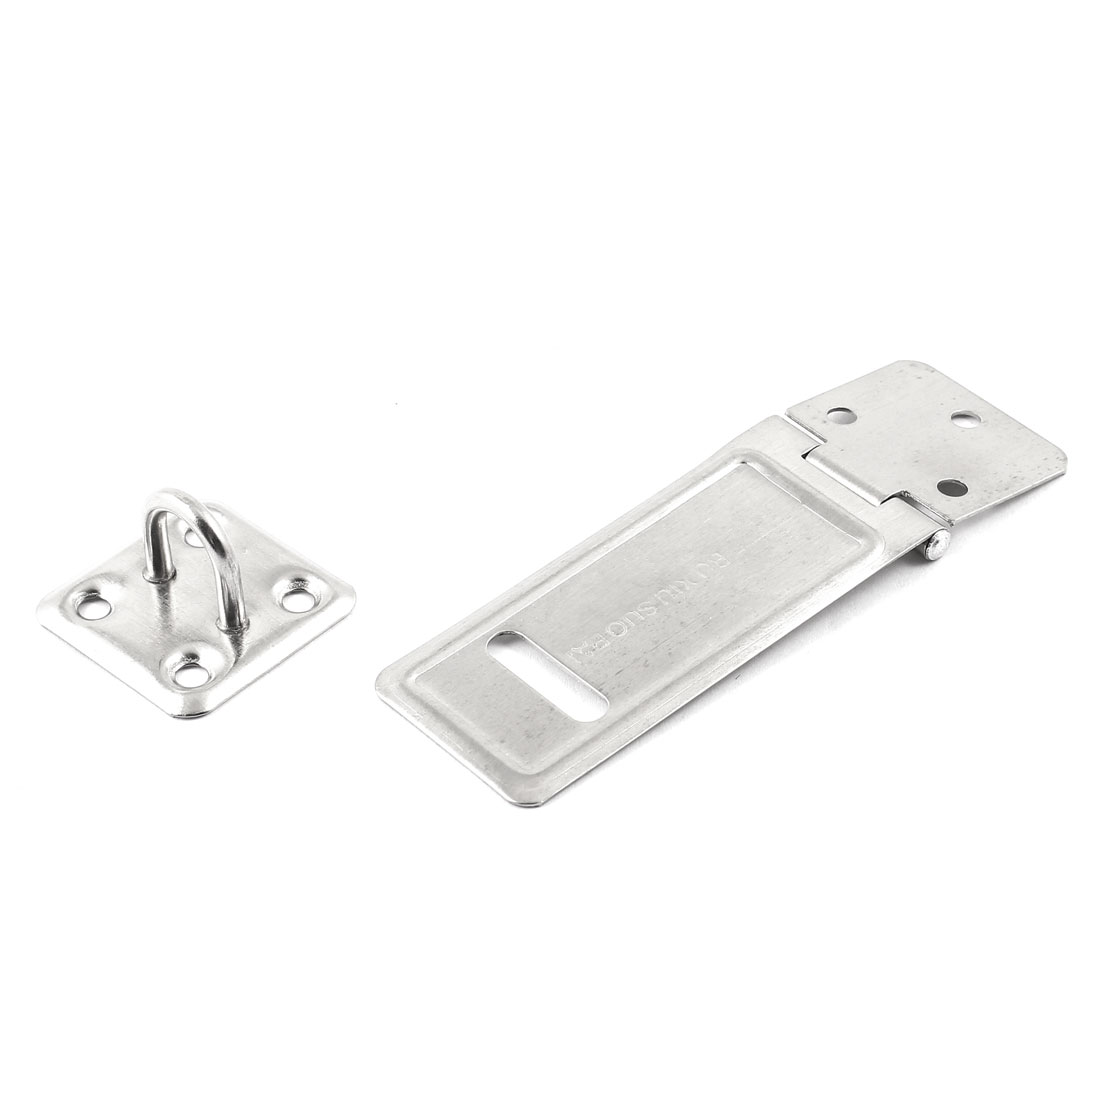 Cabinet Cupboard Stainless Steel Padlock Hasp Staple Set